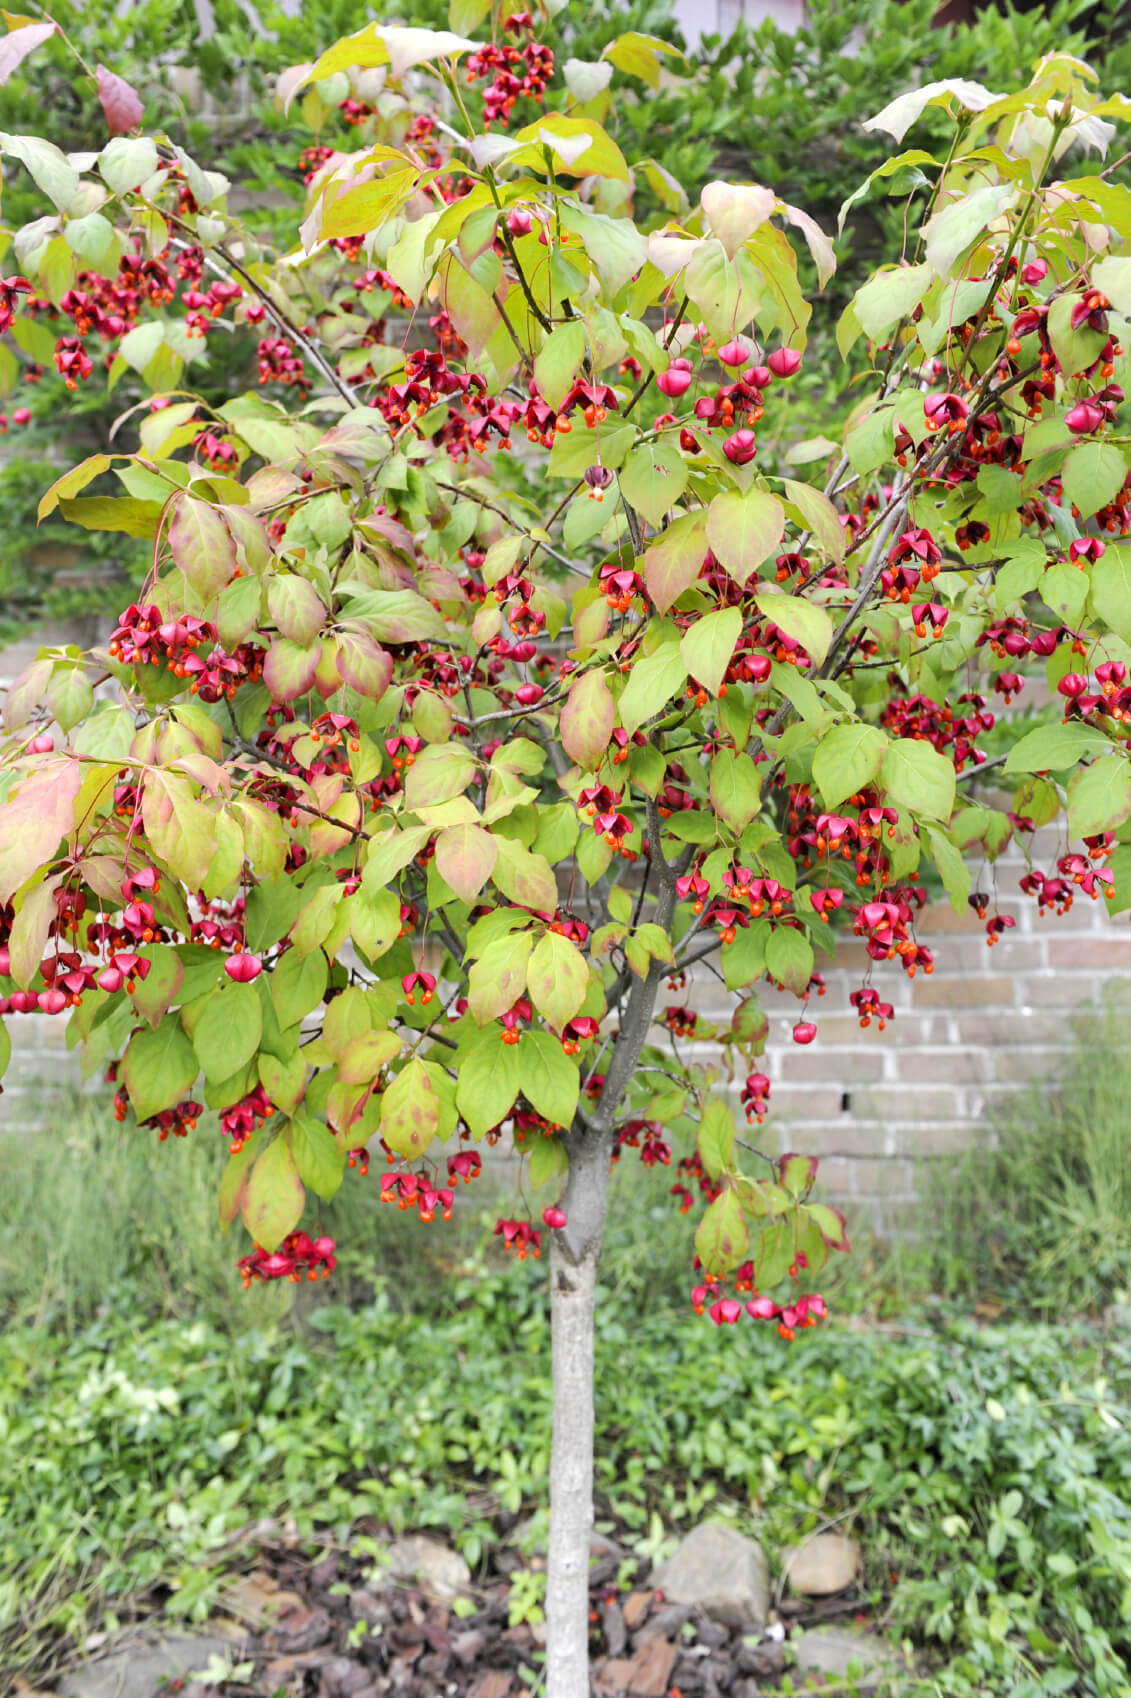 Here is a berry bush that provides this space with lovely color. Berry bushes can really bring an interesting contrast and texture to your garden, all while producing tasty berries.